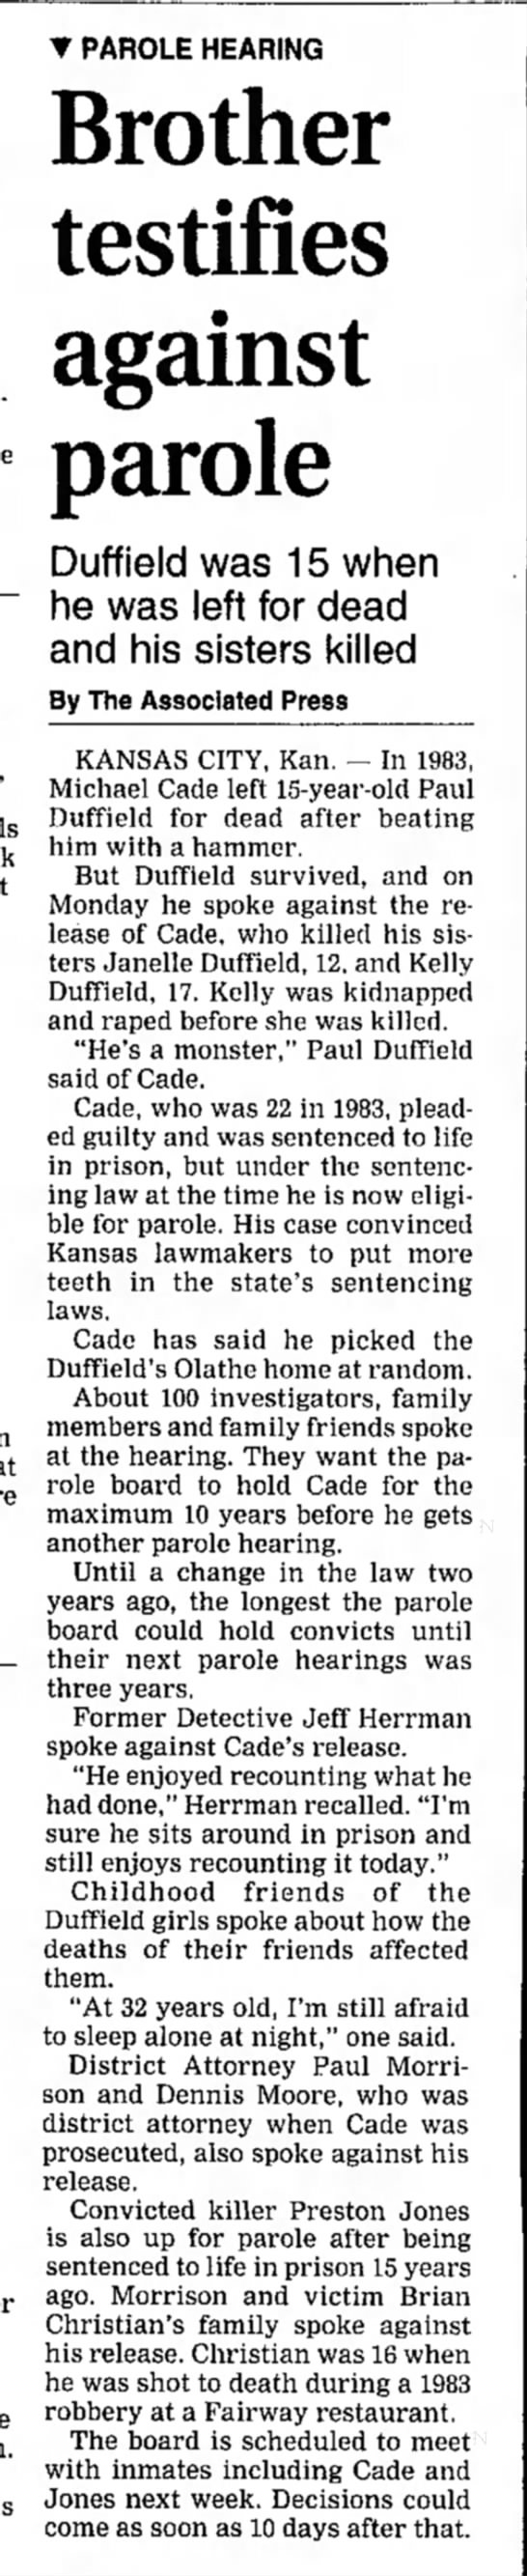 Duffield murders - 25 Feb 1998 - Salina Journal, KS -